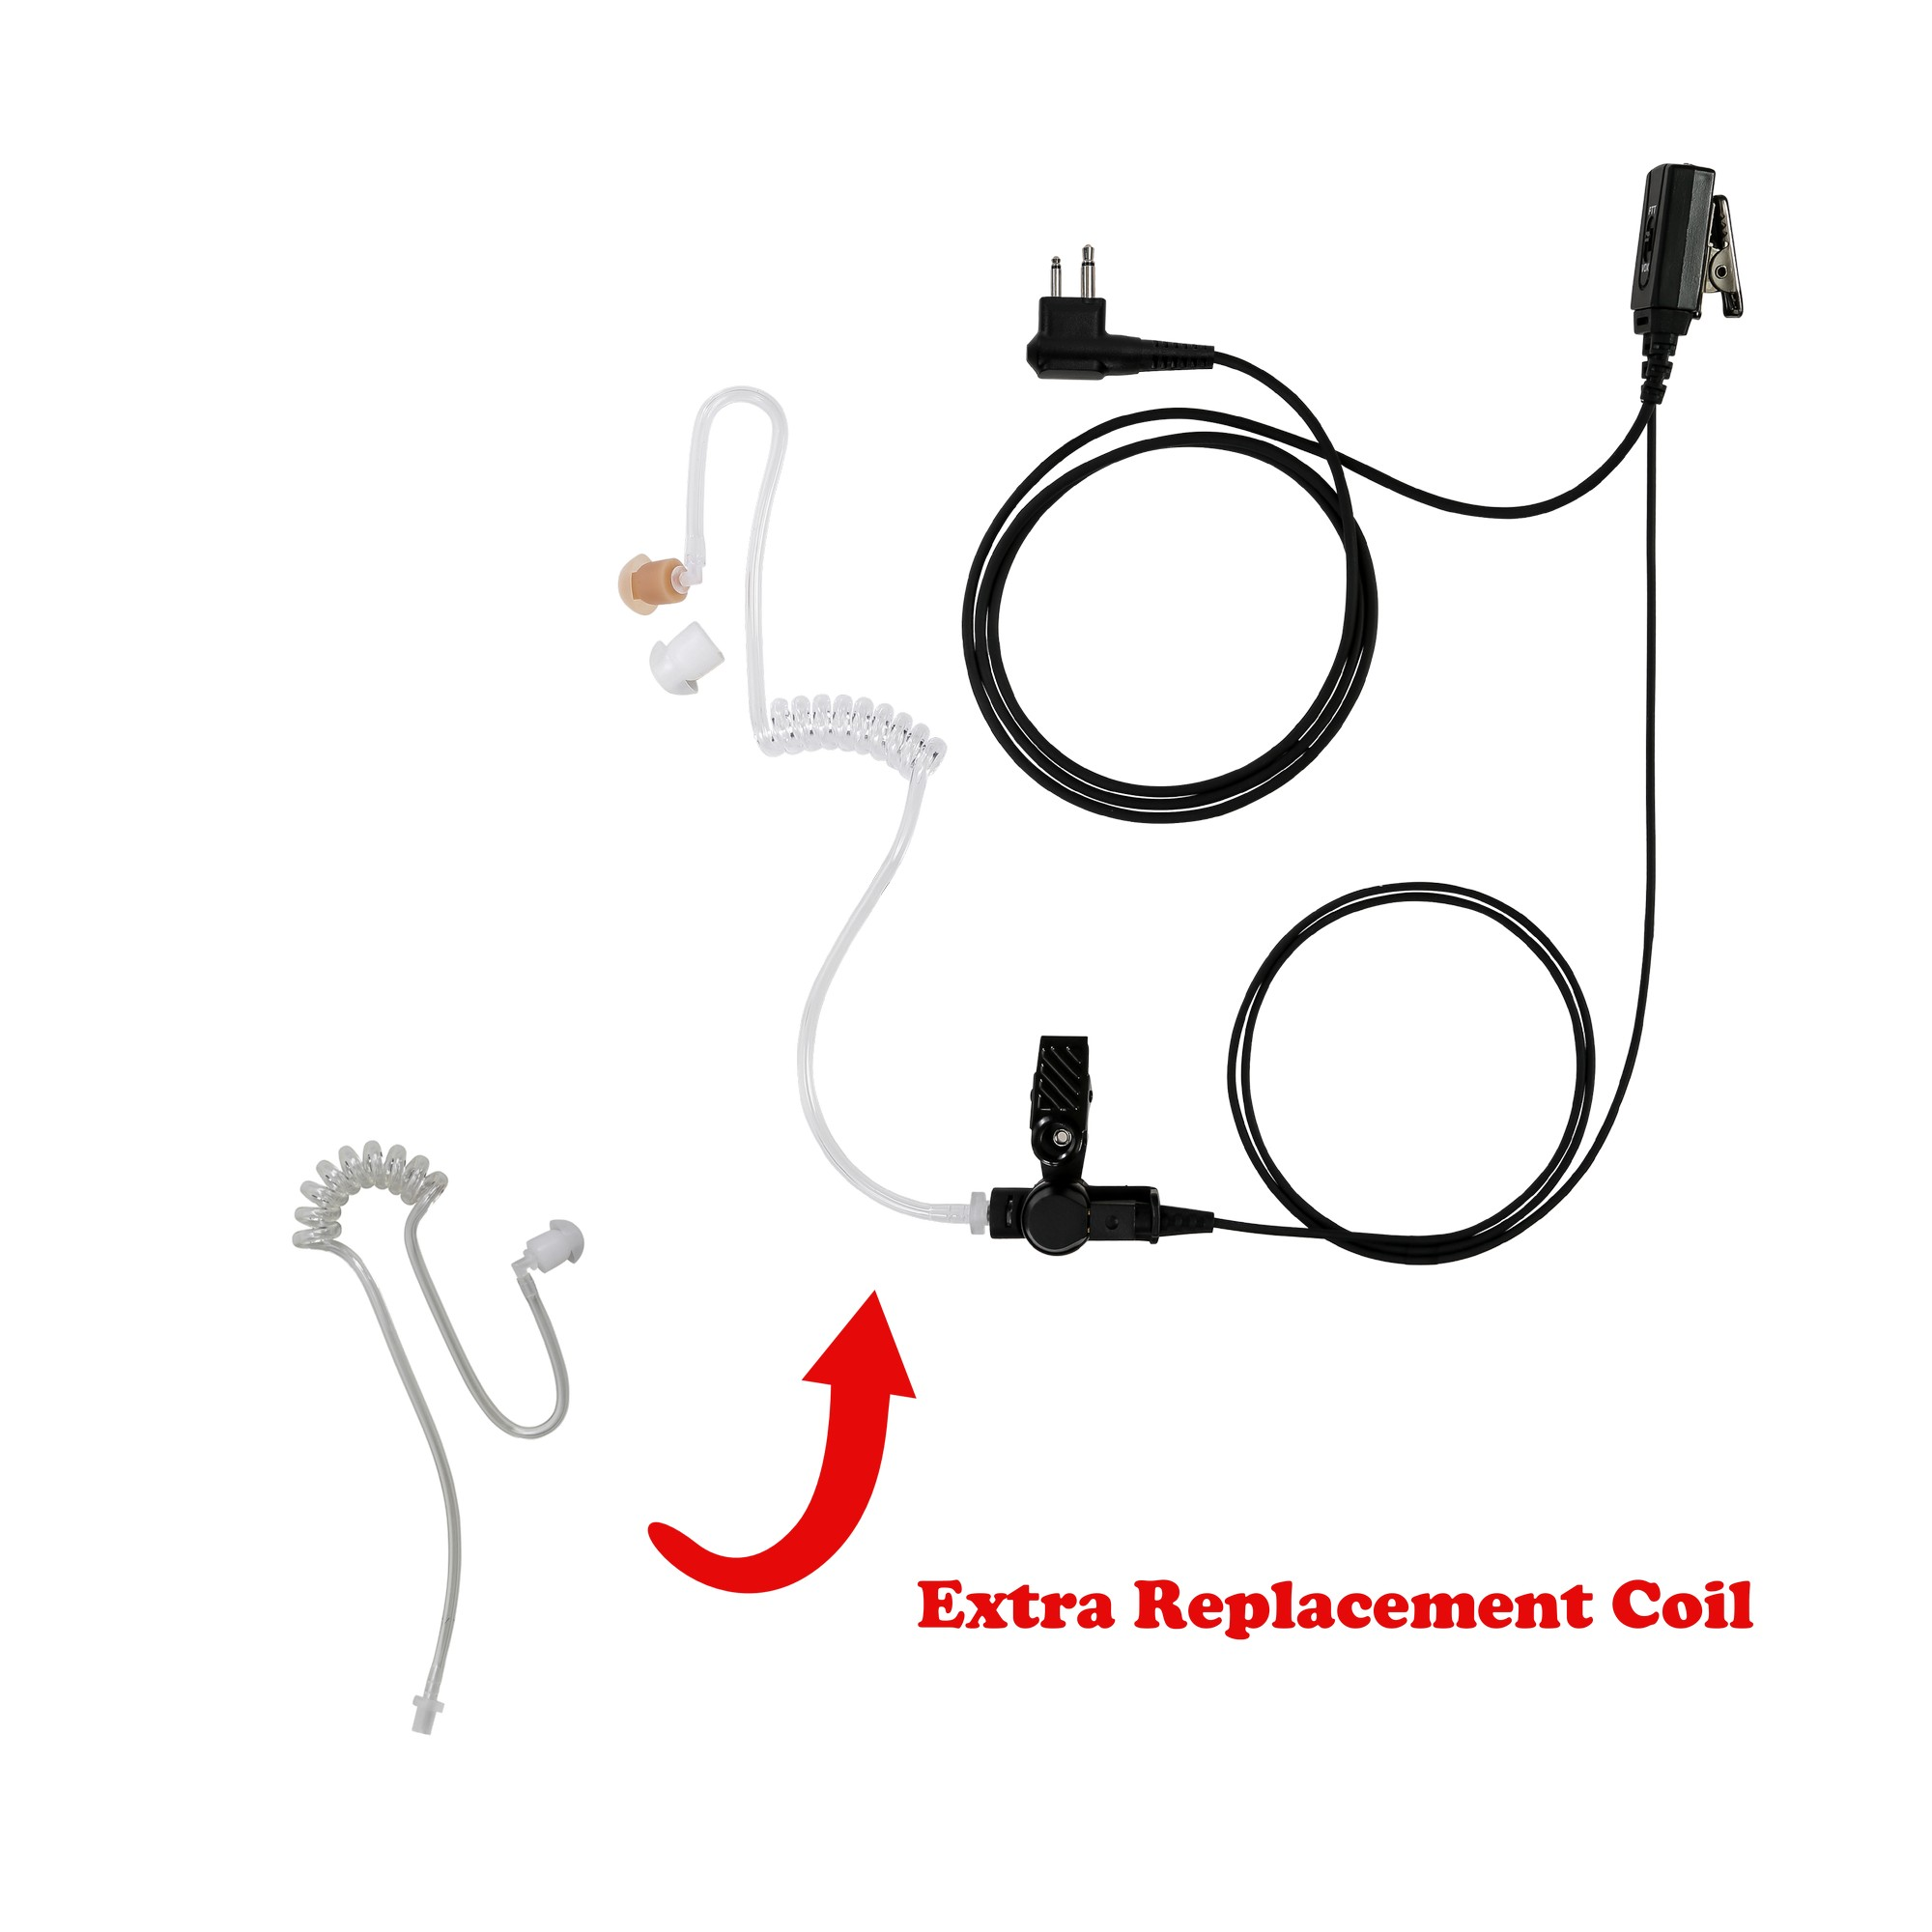 Maxtop ASK2425-H1 1-Wire Clear Coil Surveillance Kit